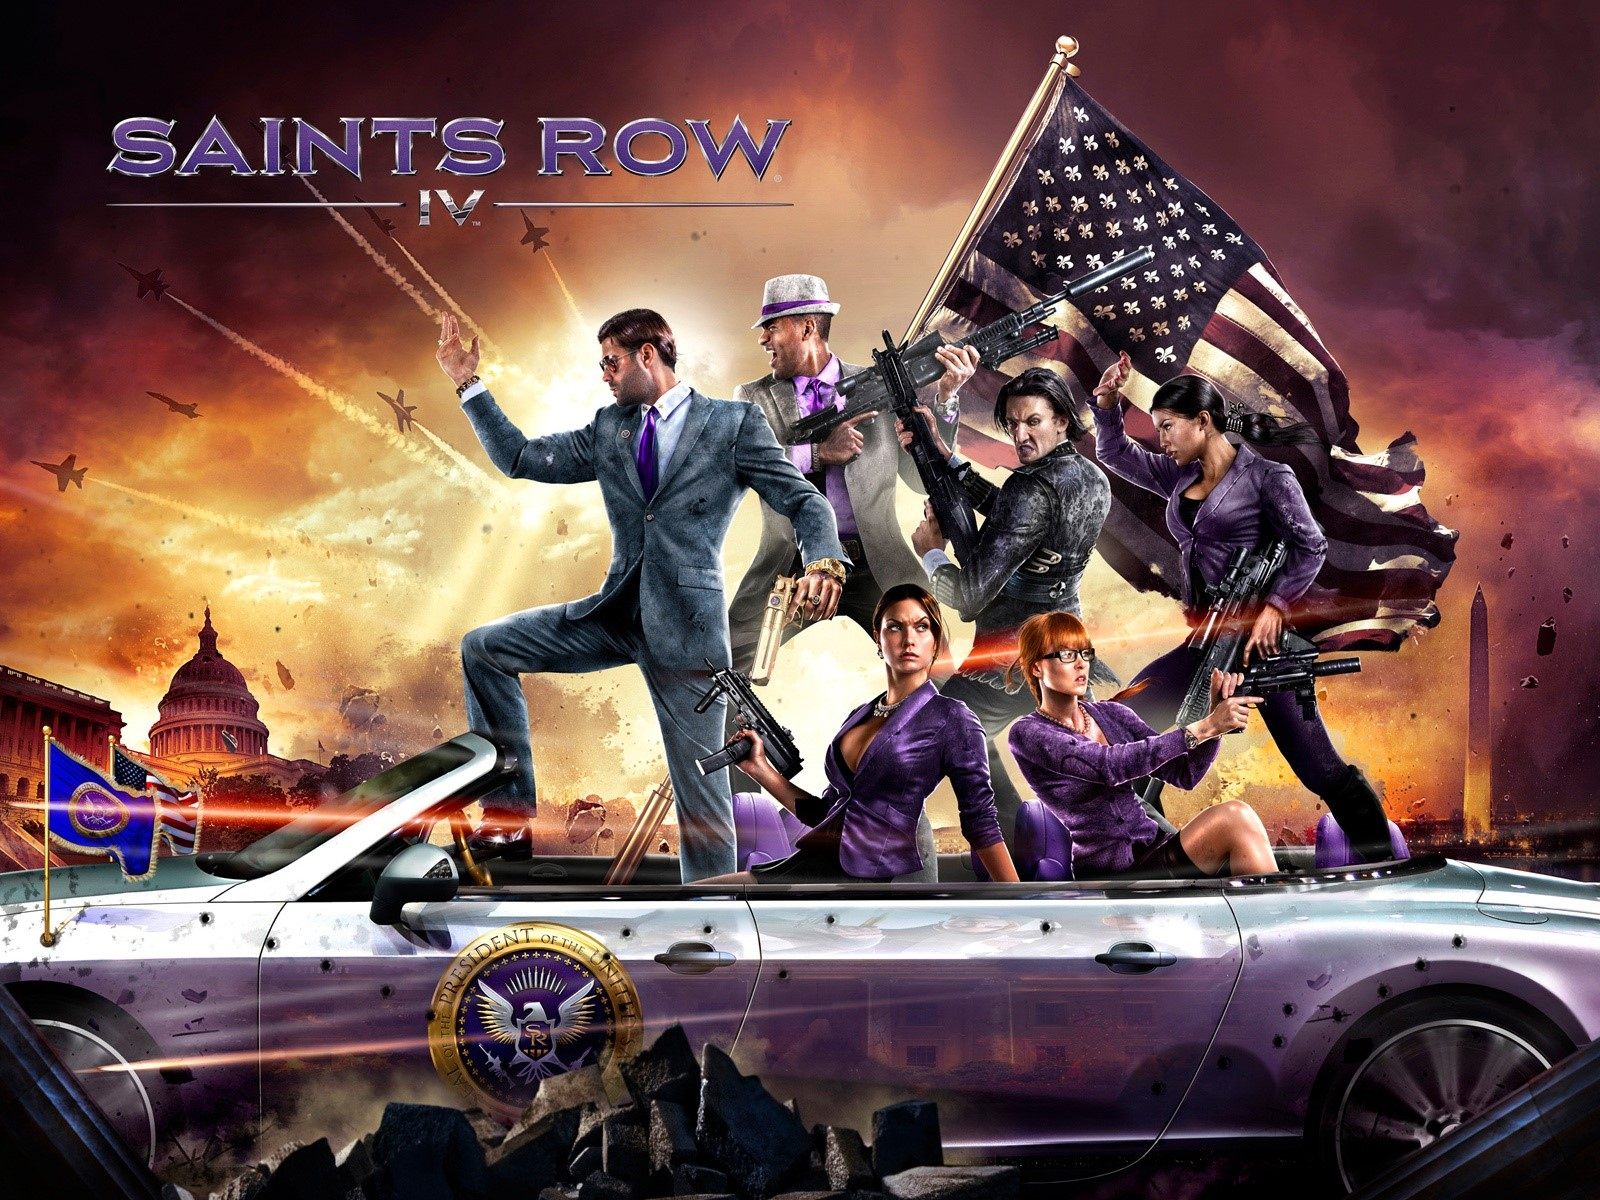 Wallpaper Saints Row 4